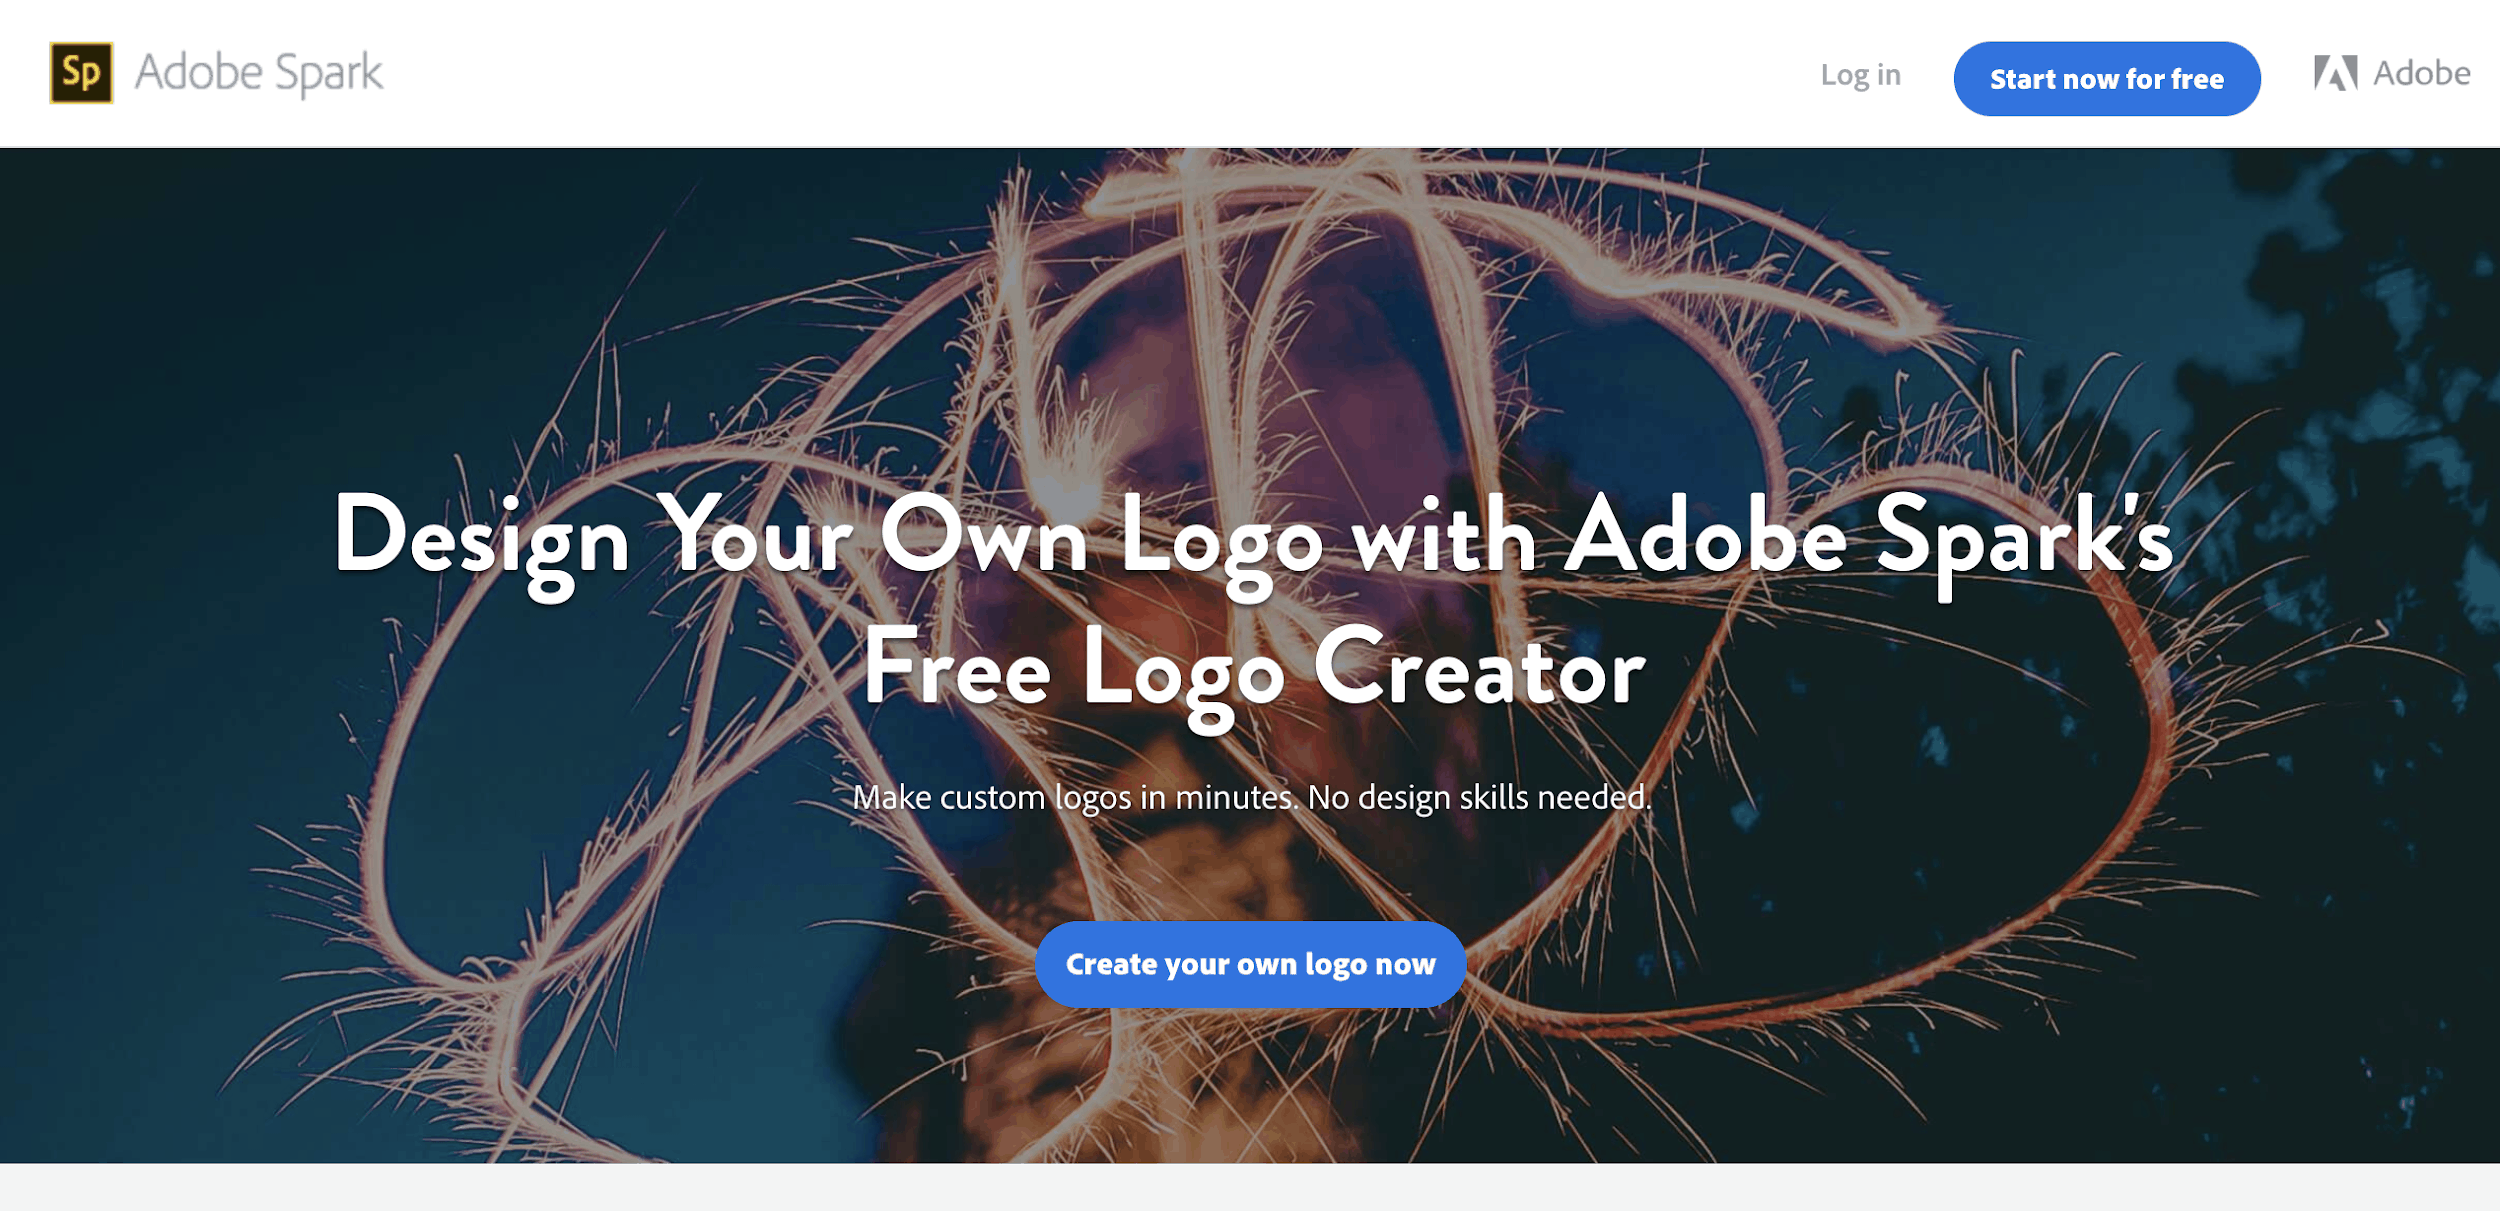 Adobe Spark free logo creator - homepage screenshot